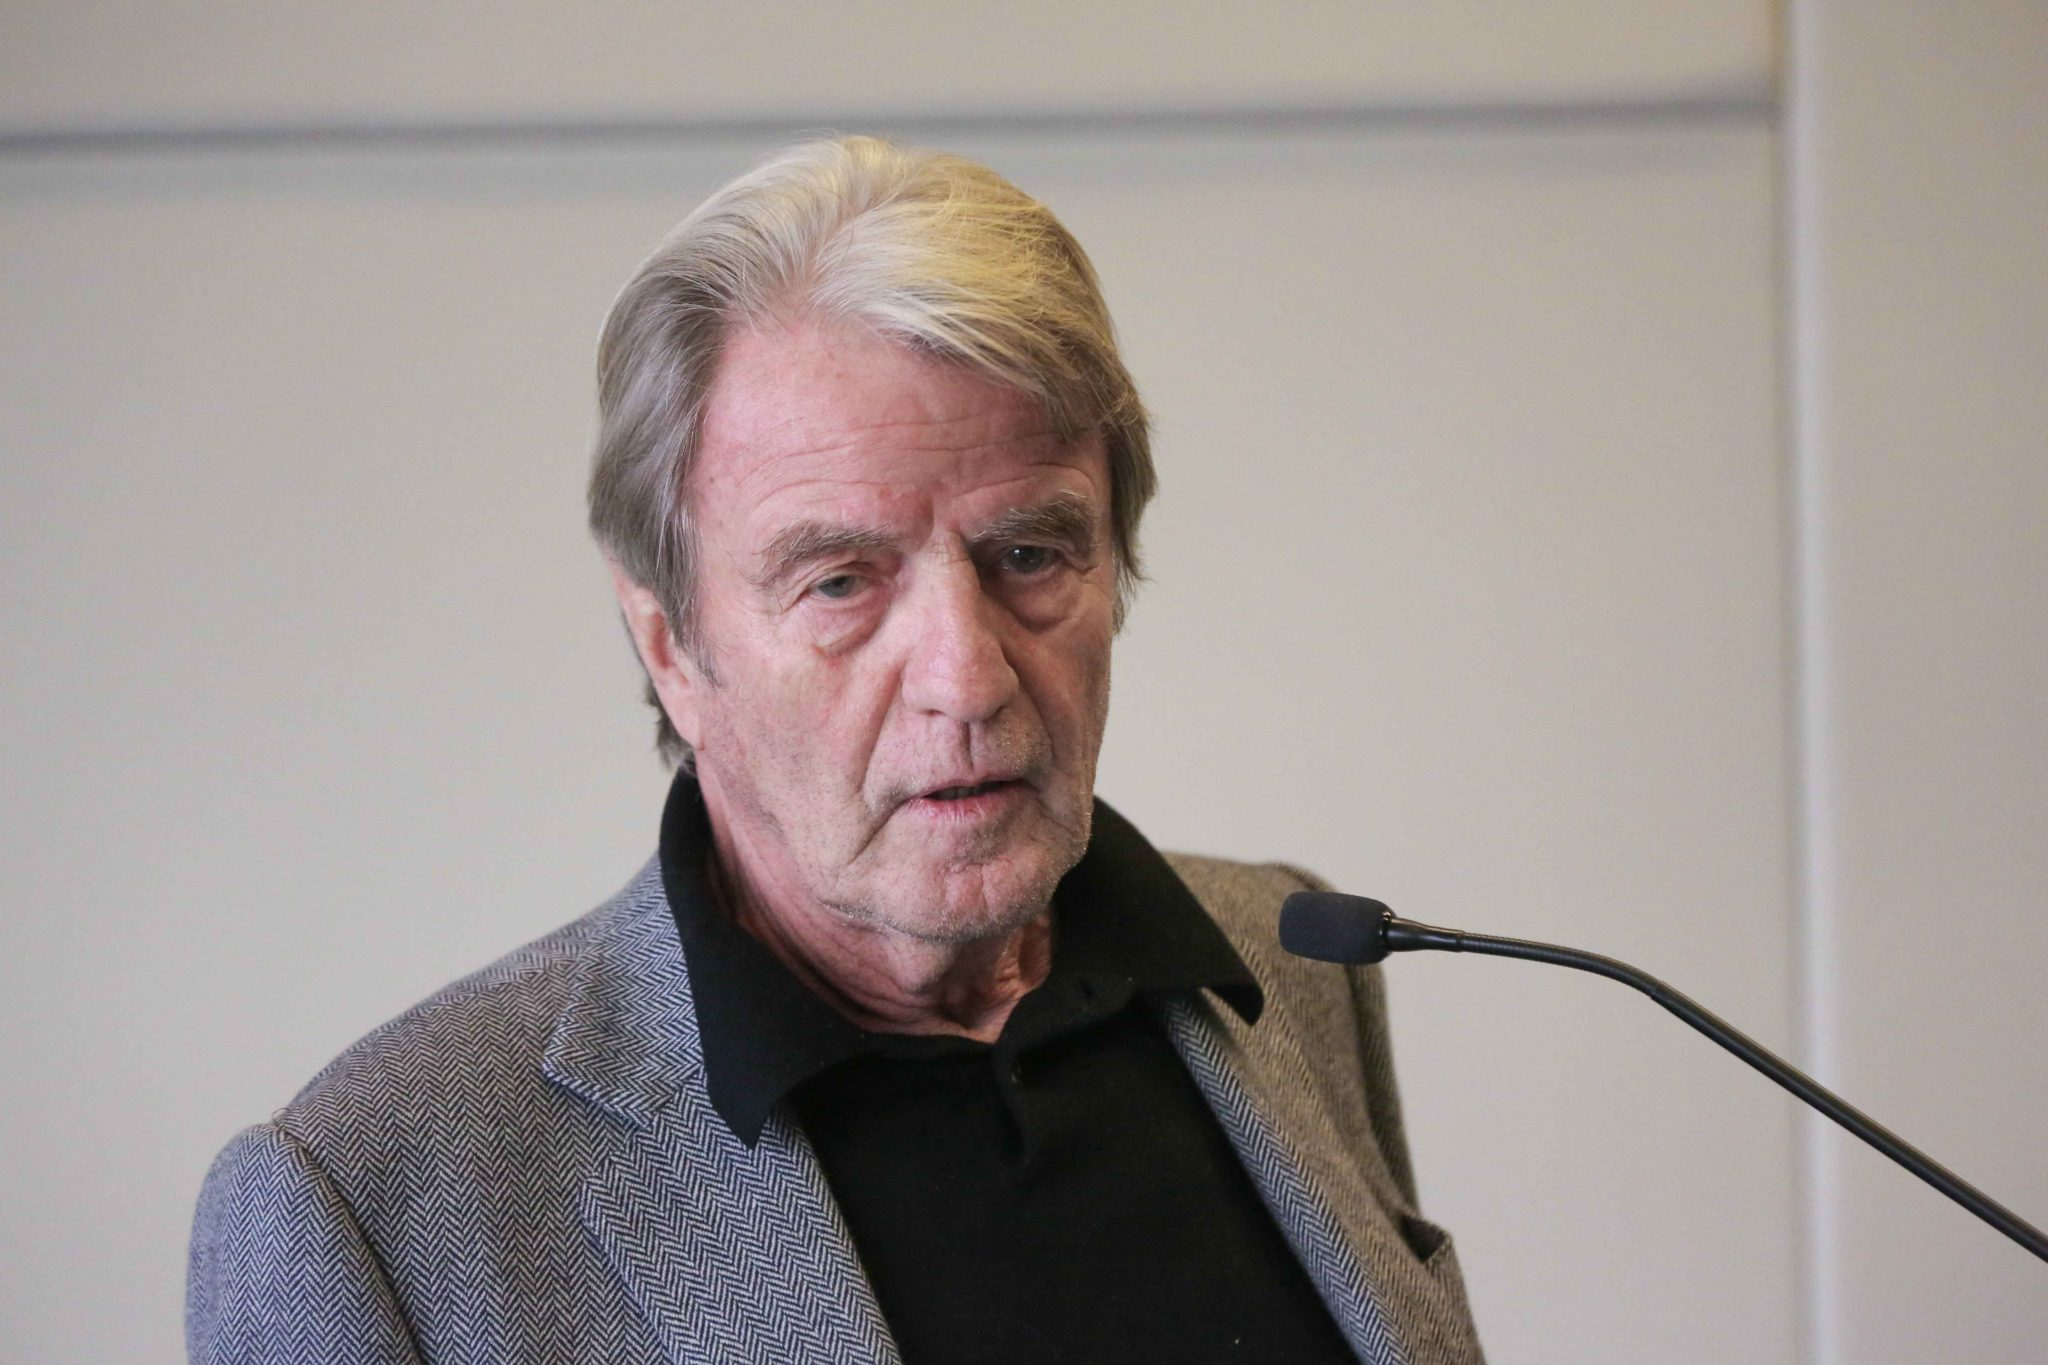 Former French Minister for Foreign Affairs Bernard Kouchner takes part in the 10th national convention of the Representative Council of Jewish Institutions of France (CRIF - Conseil Representatif des Institutions juives de France) on November 17, 2019, at